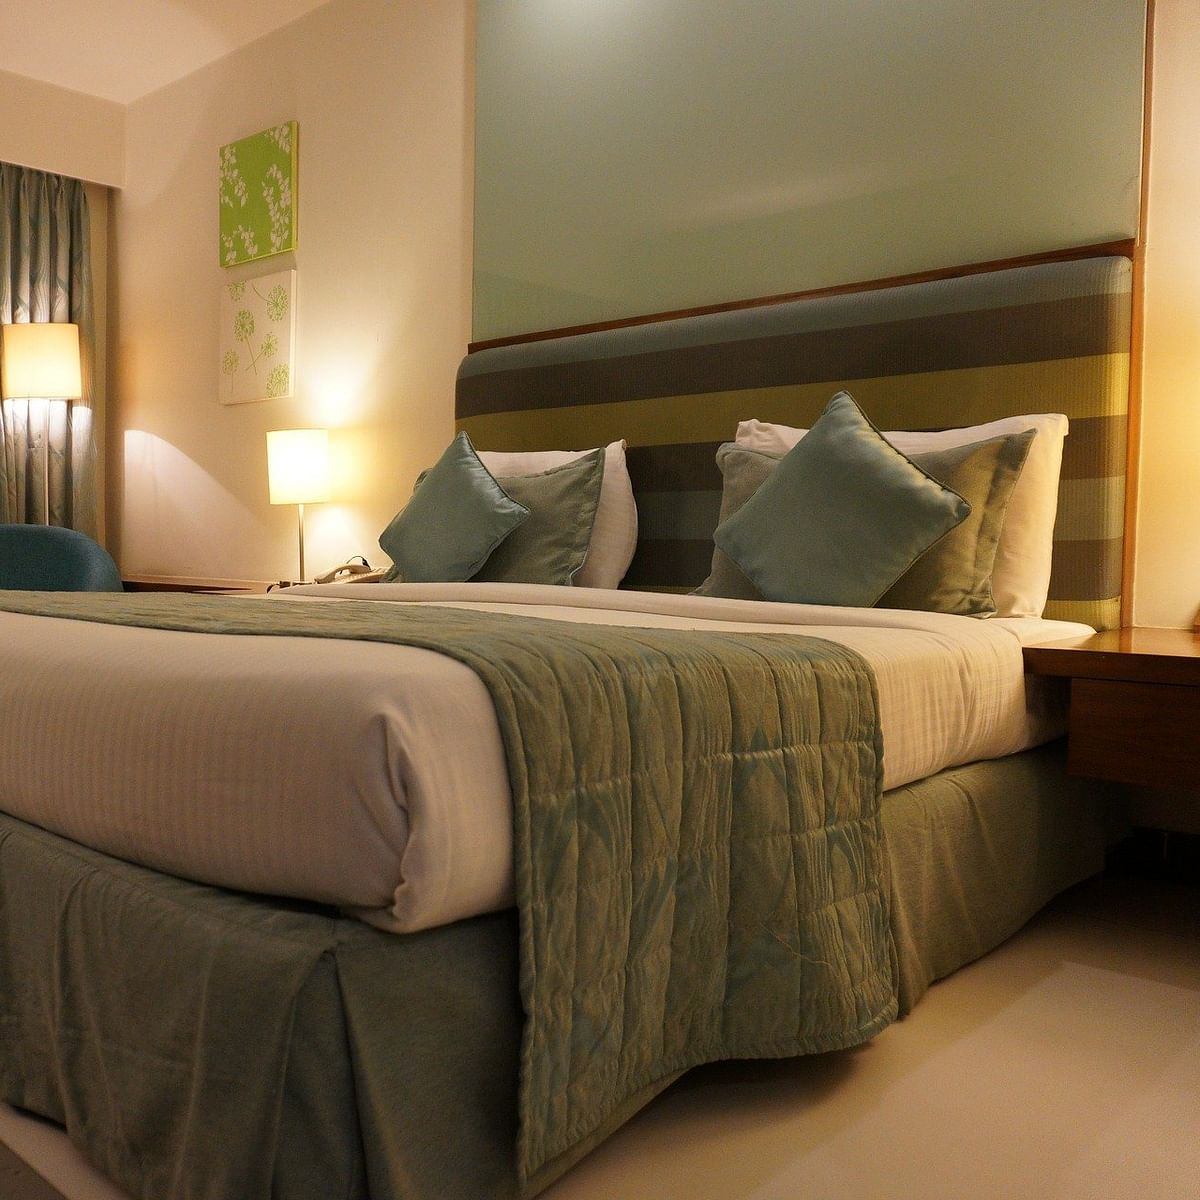 Chennai hoteliers hope for better occupancy rate from September